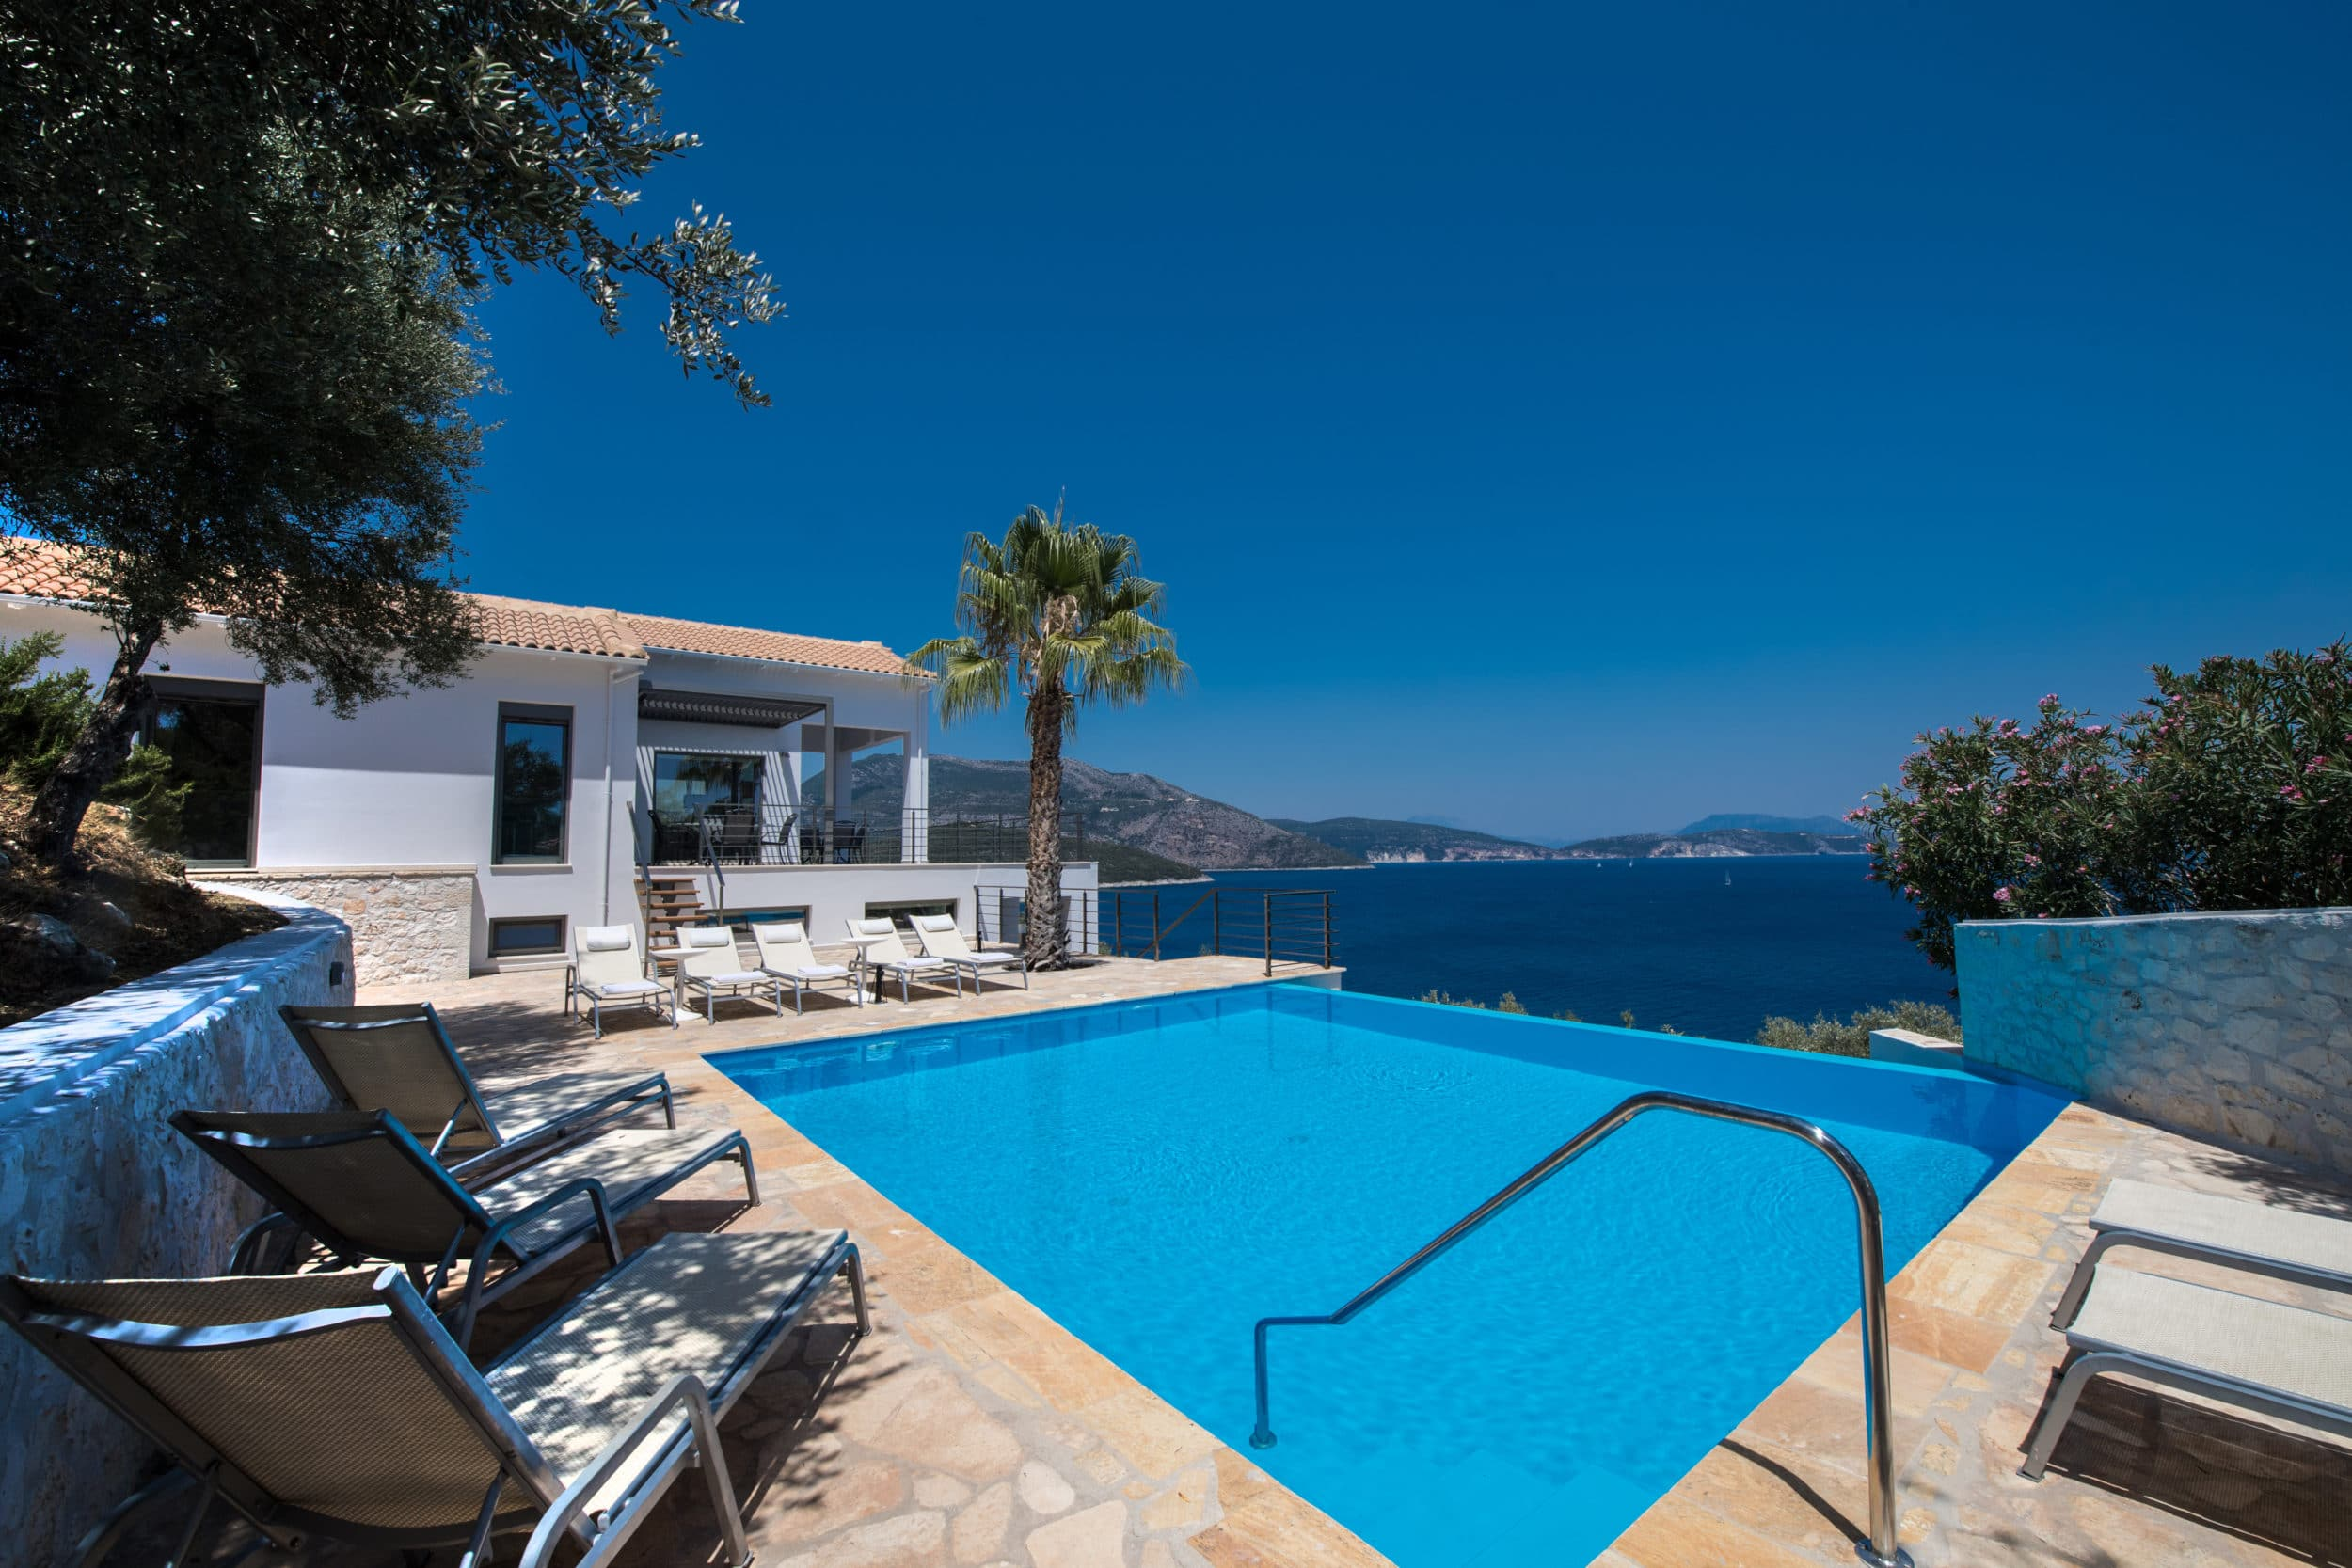 Luxury Villa Lefkada - Greece - Swimming Pool